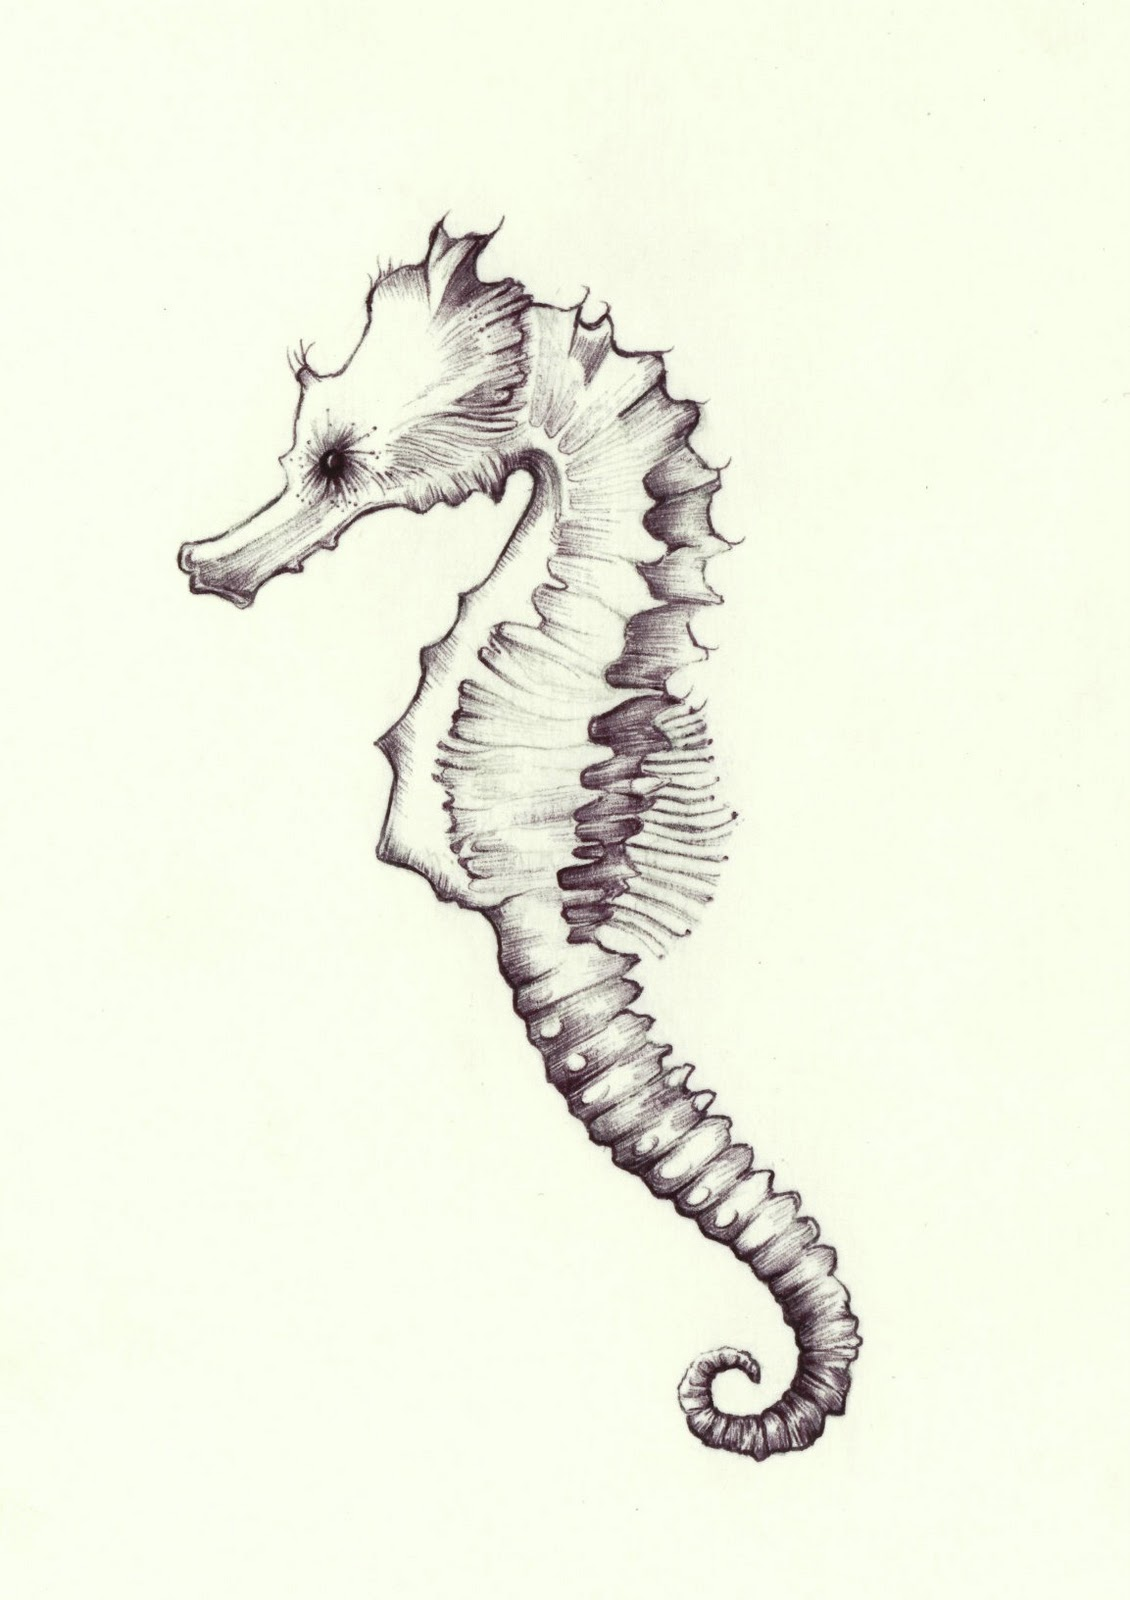 December 1, 2011 - Seahorse | A Drawing a Day for a Year